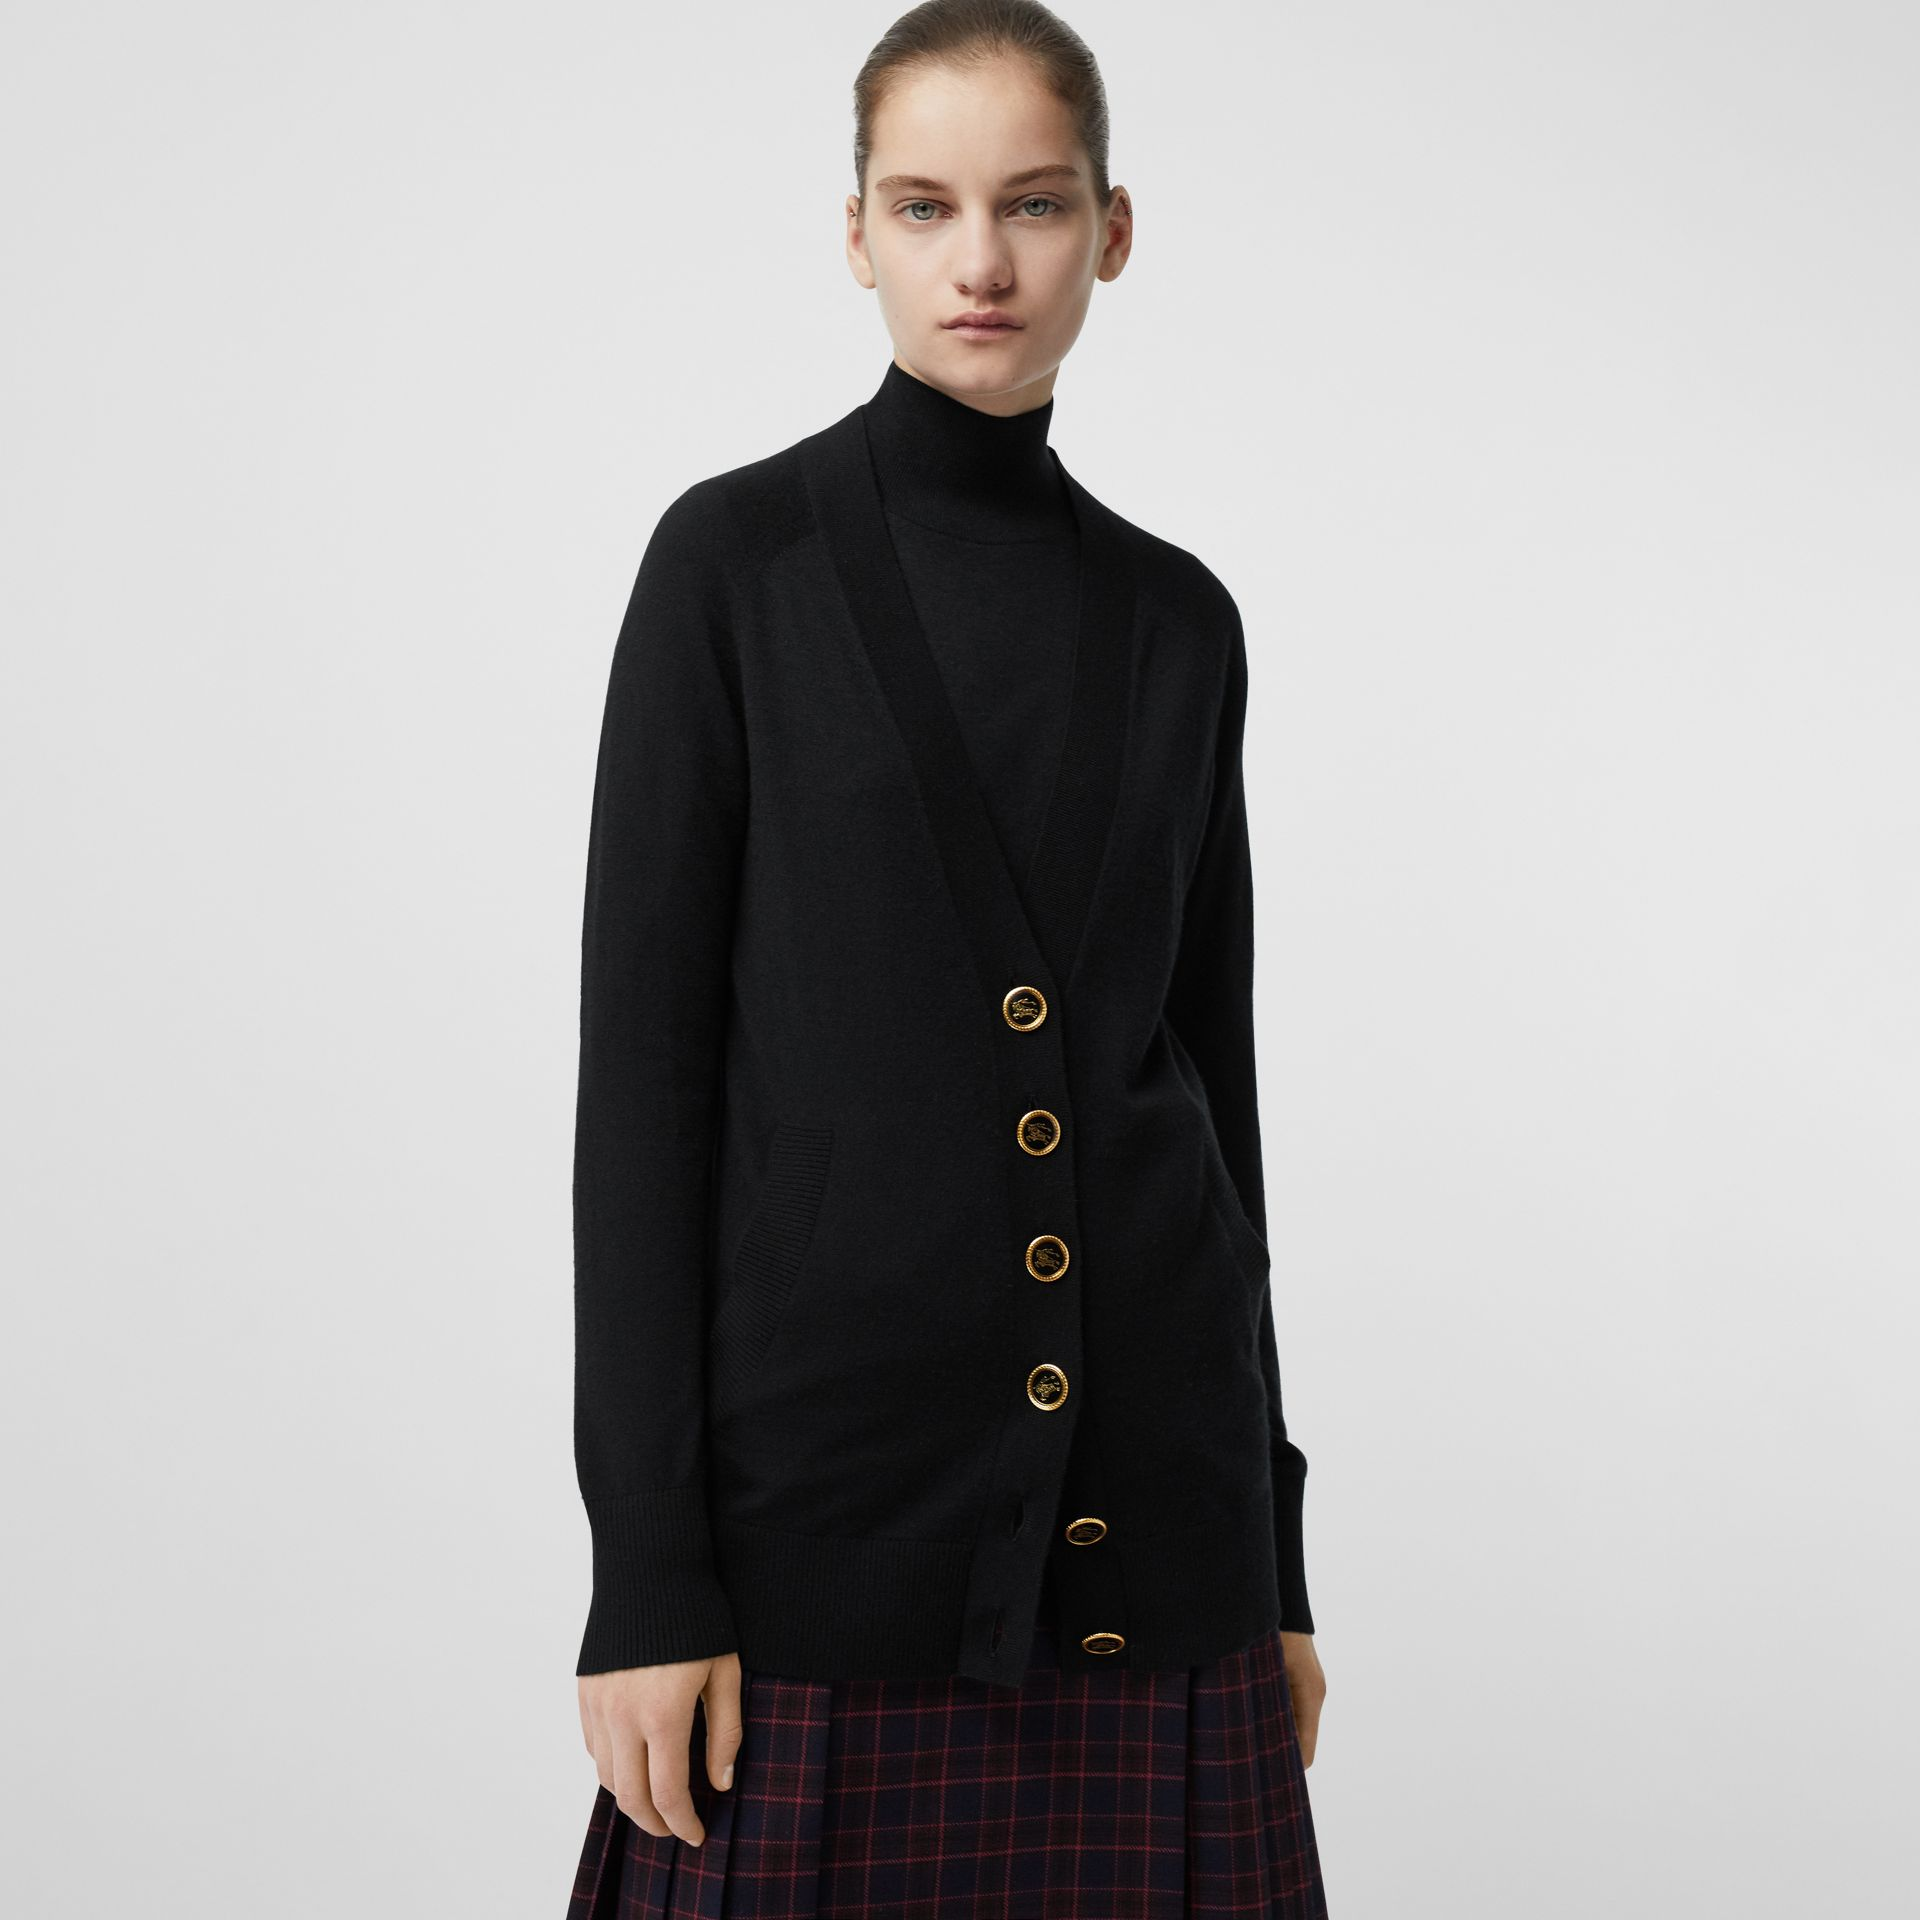 Cashmere V-neck Cardigan in Black - Women | Burberry Canada - gallery image 4